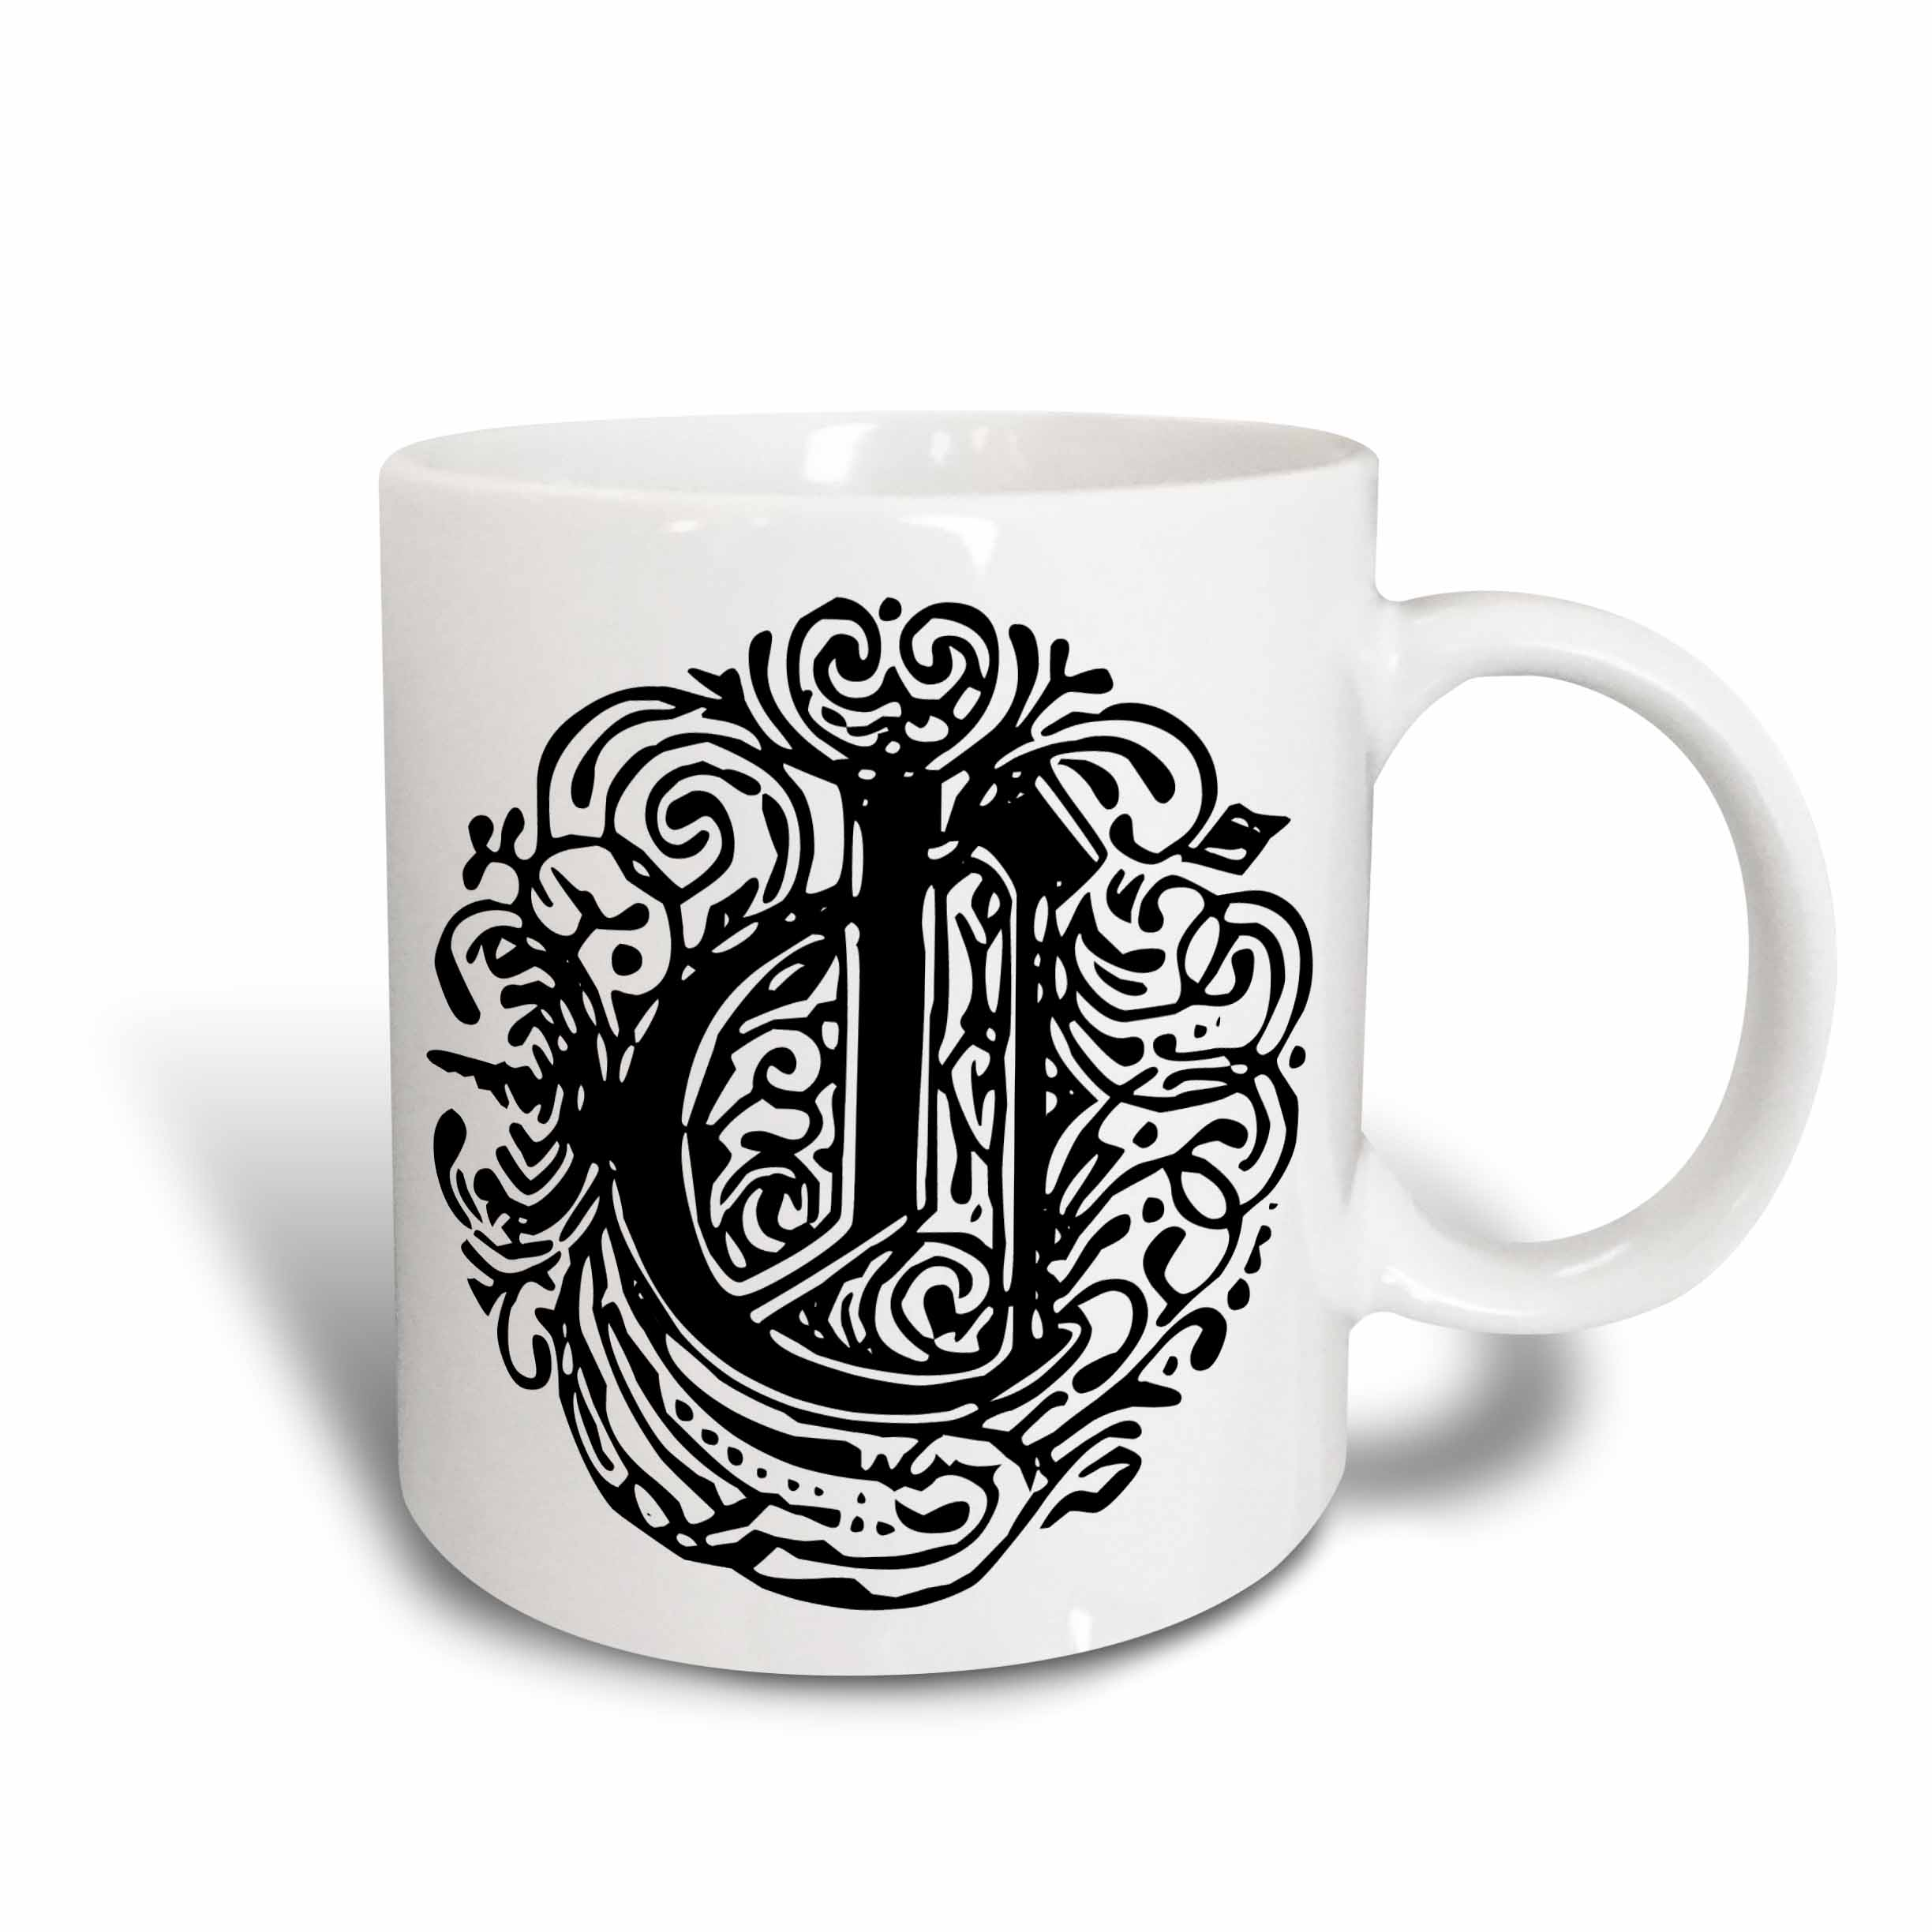 3dRose Fancy Letter C, Ceramic Mug, 15-ounce